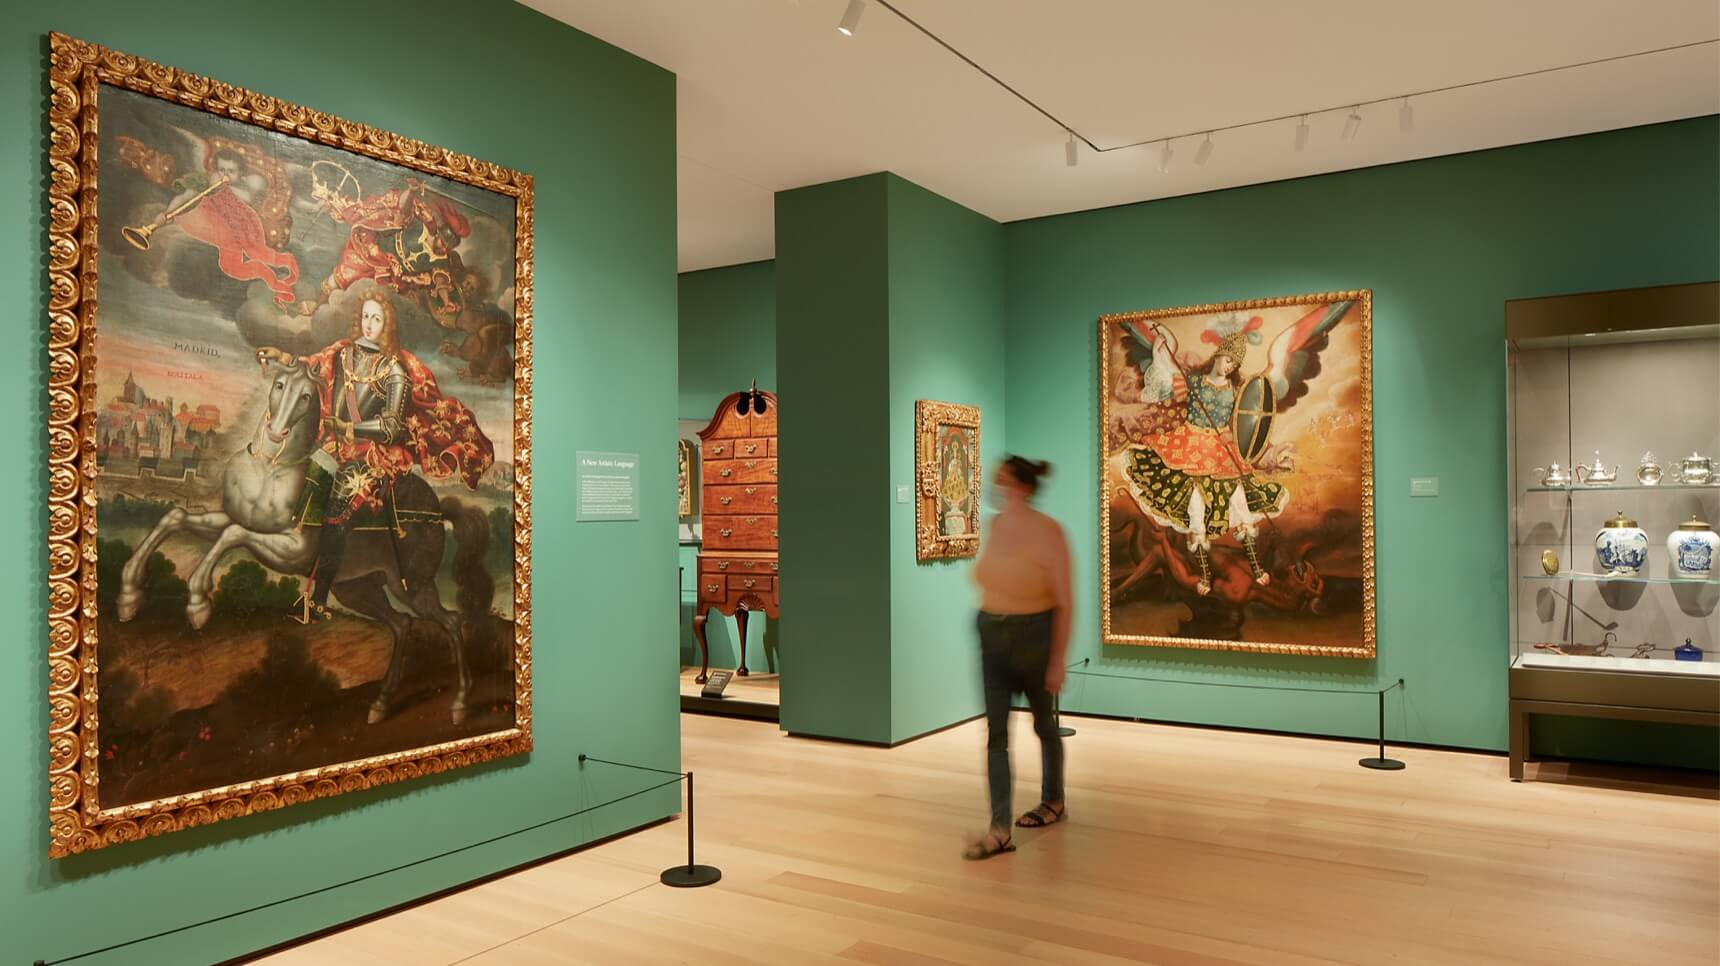 Masked visitor walking through galleries with green walls and large colonial Latin American paintings